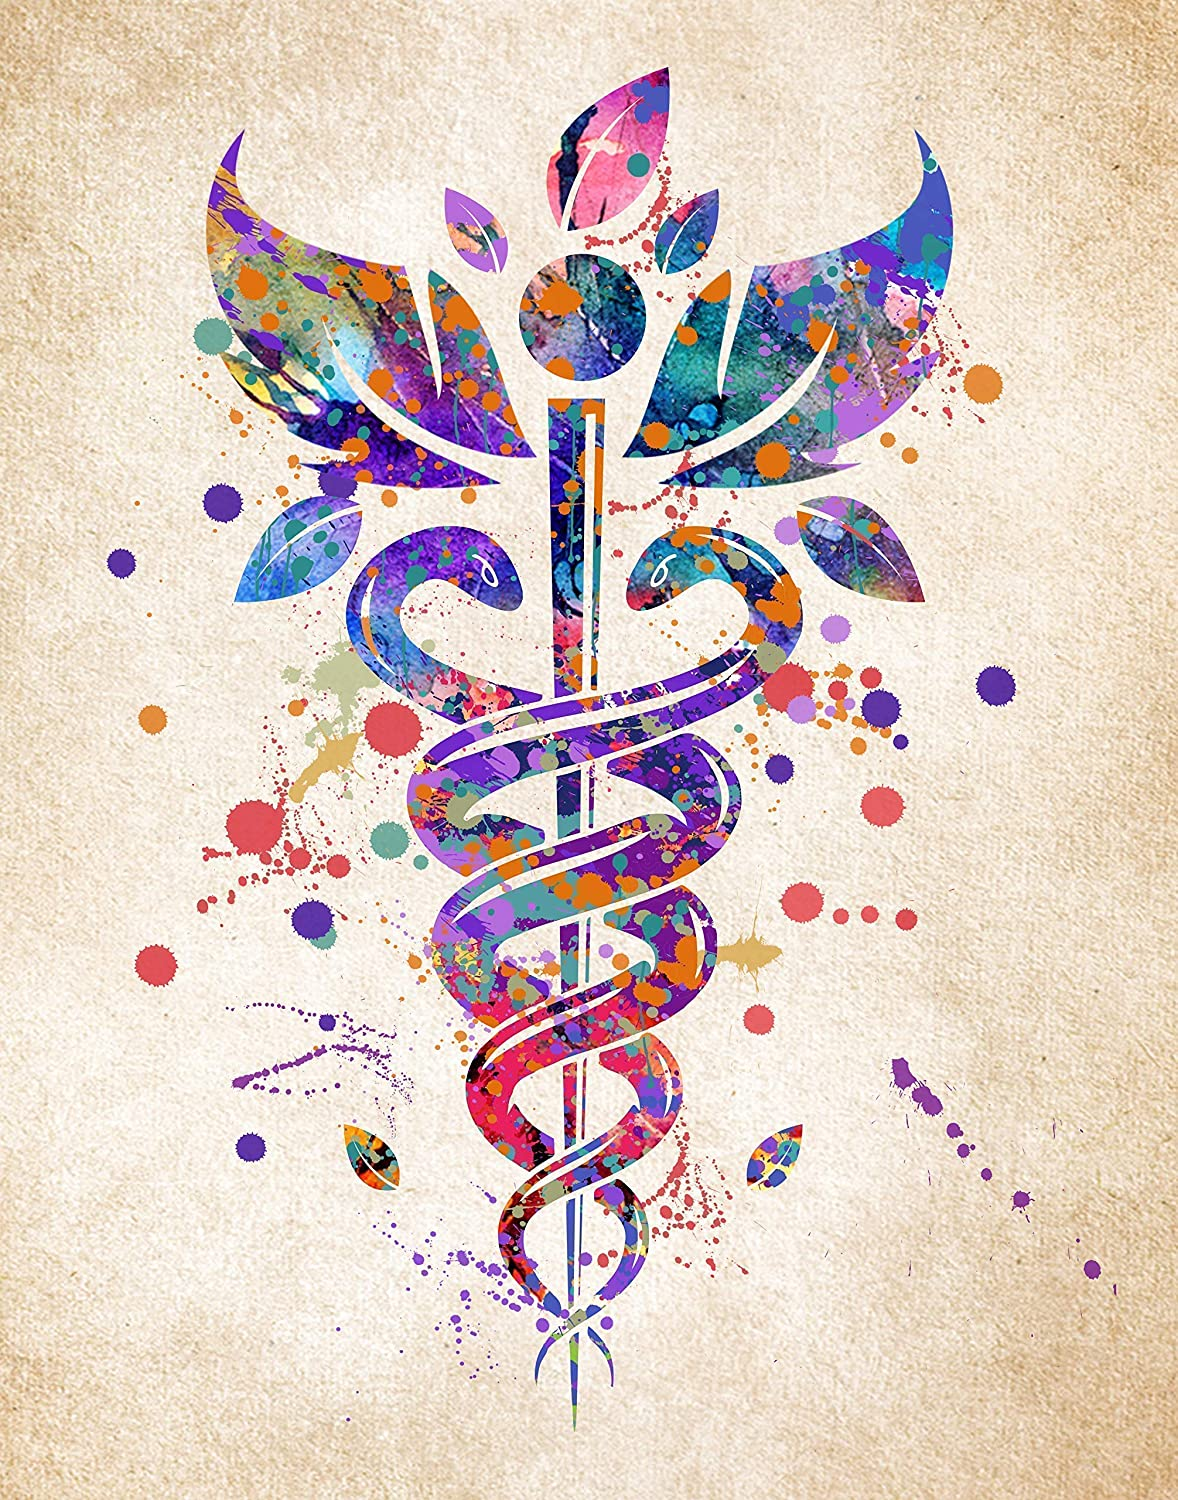 Caduceus Medical Symbol Wall Art, Ideal Gift for Medical or School Student, Doctorate or Nursing Graduation, Decor for a Hospital, Medical or Doctor Office, 11inch x 14inch By H+CO Inspired